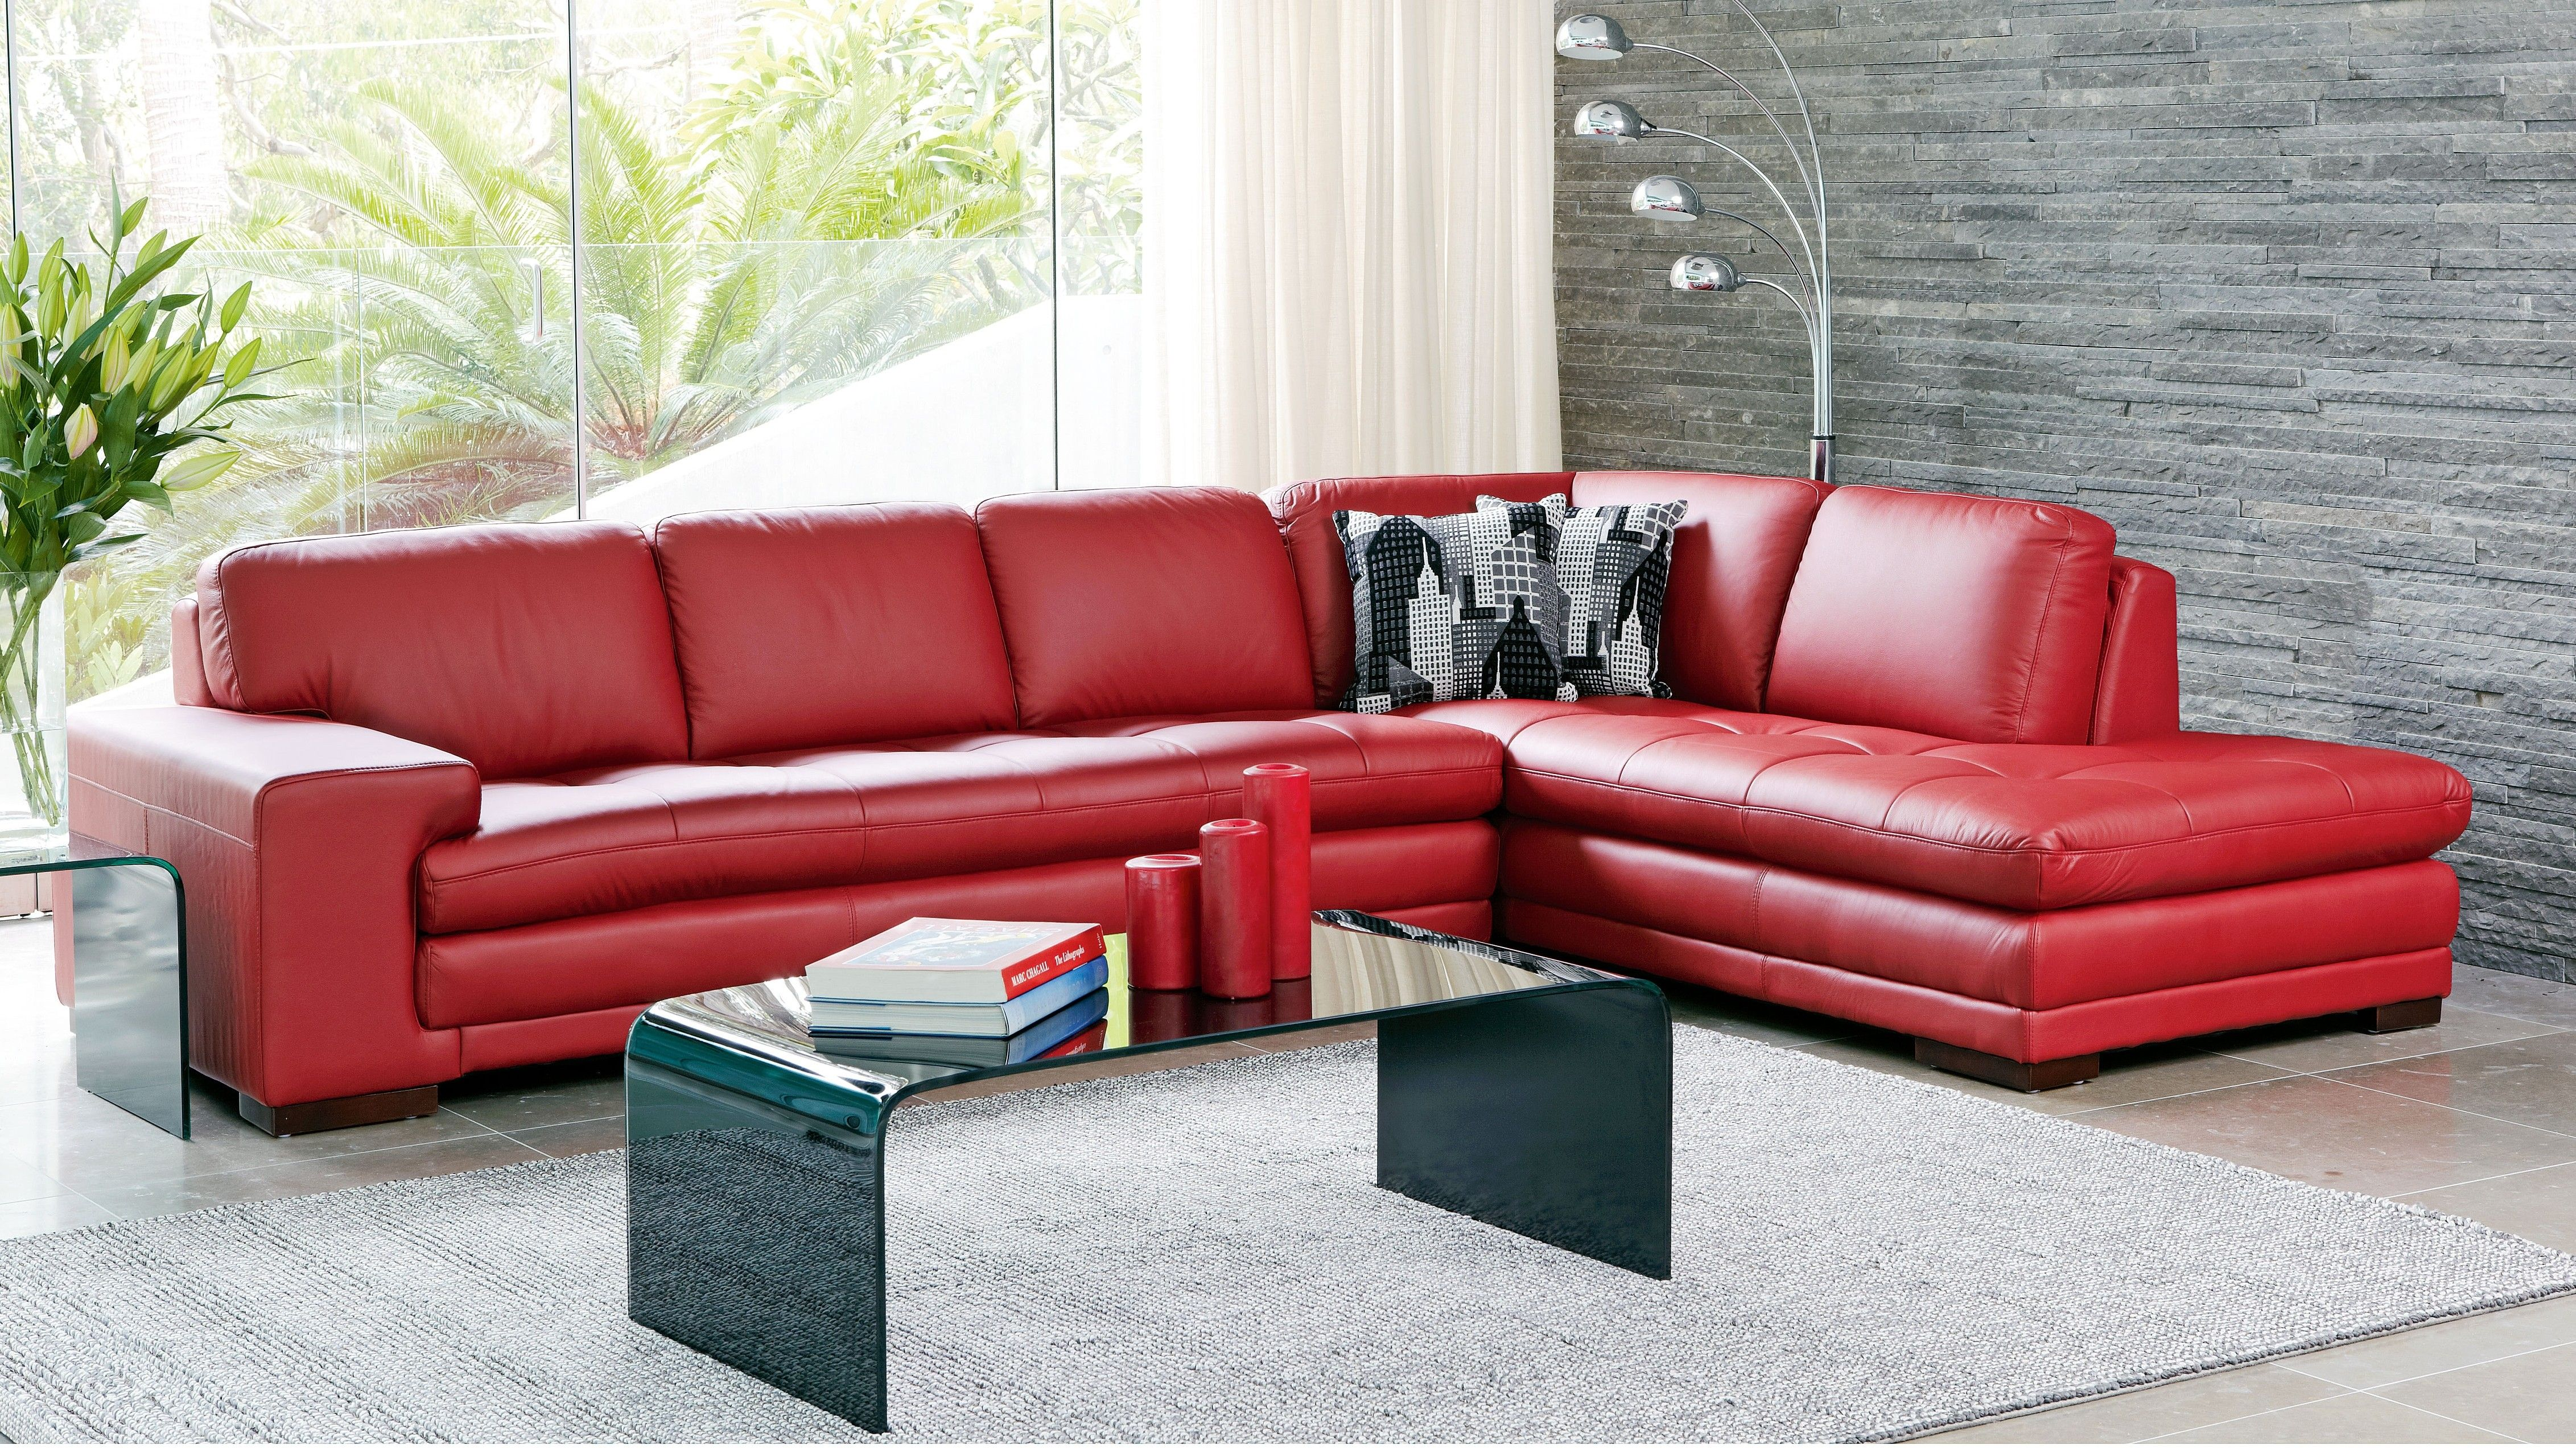 dylan leather sofa | Homedesignview.co